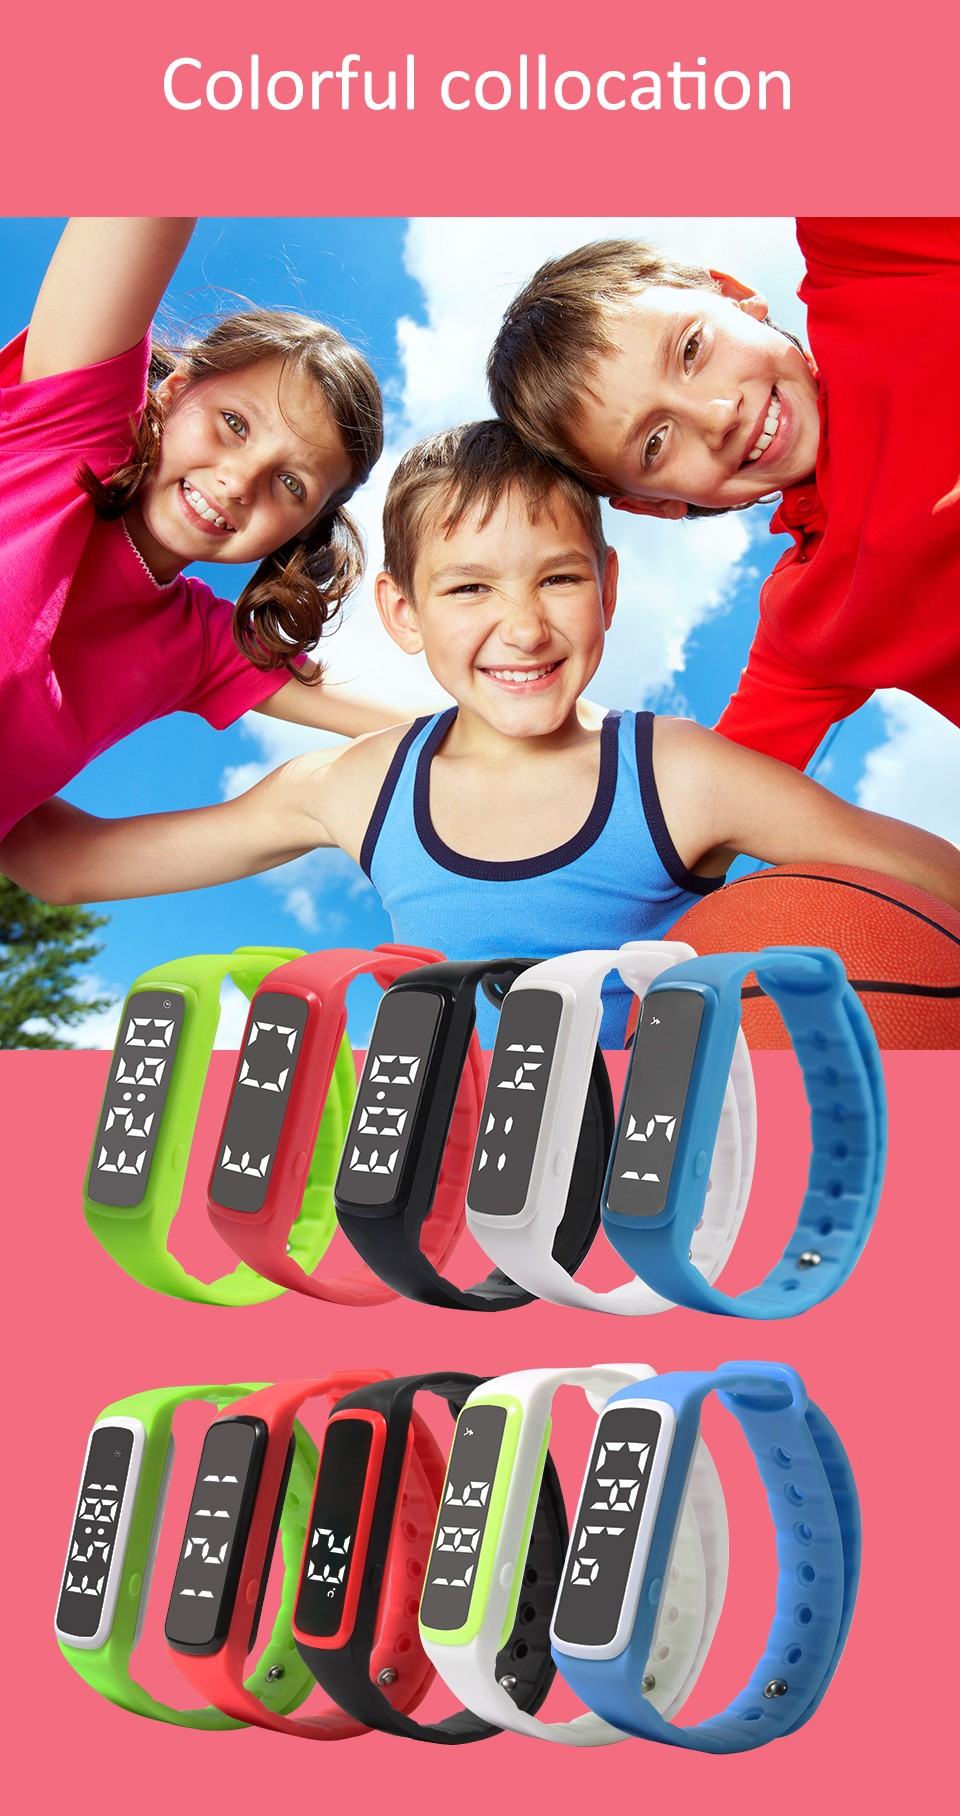 factory OEM silicone pedometer intelligent digital watch kids children smart wrist watch